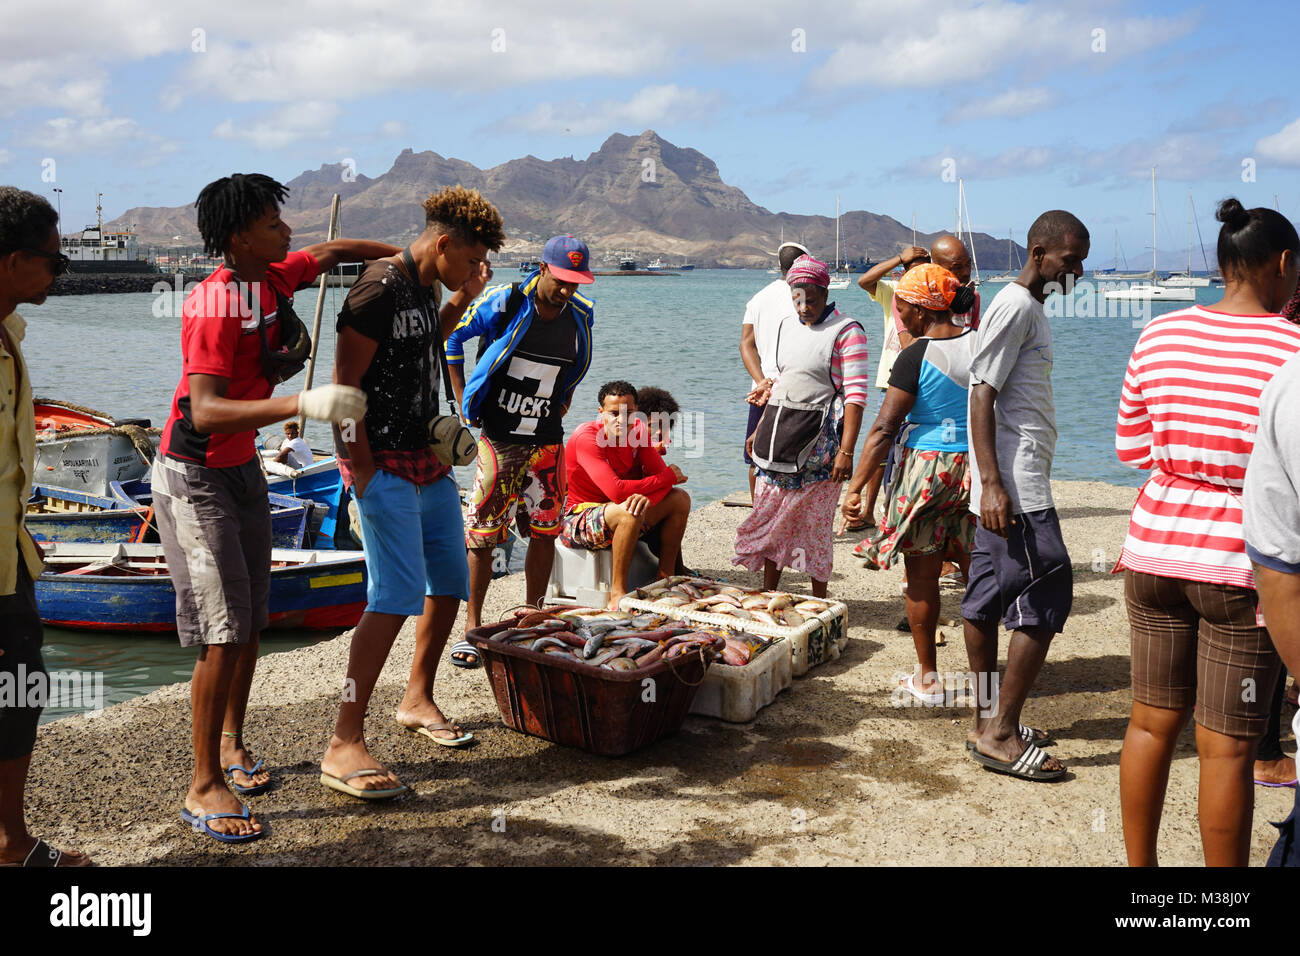 People on the landing Stage of the fish market in Mindelo, watching the unloading of fishes Stock Photo